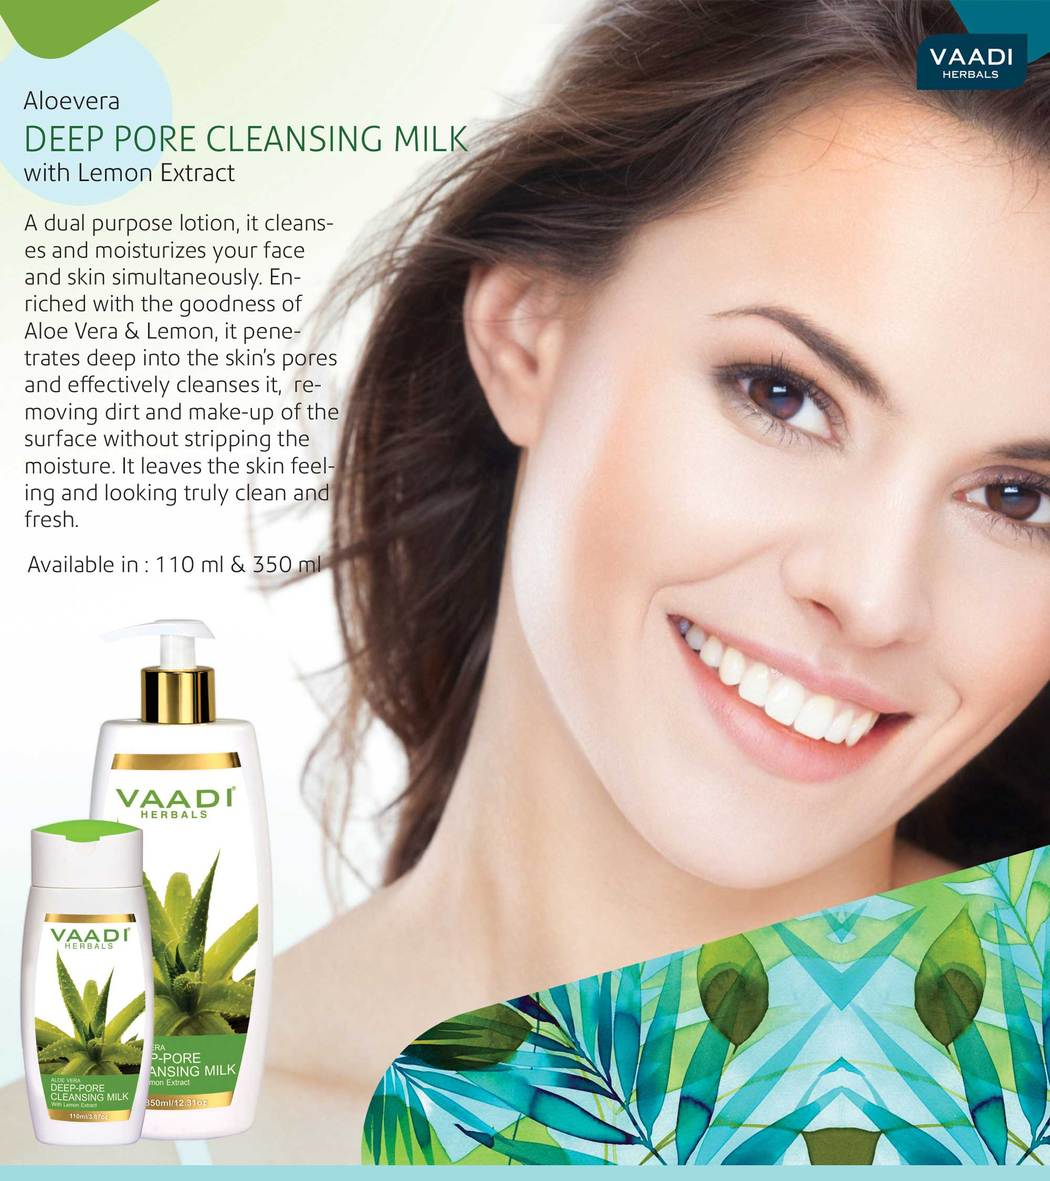 Organic Aloe Vera Deep Pore Cleansing Milk with Lemon Extract - Cleanses & Softens Skin - Locks In Moisture All Day (110 ml/ 4 fl oz)